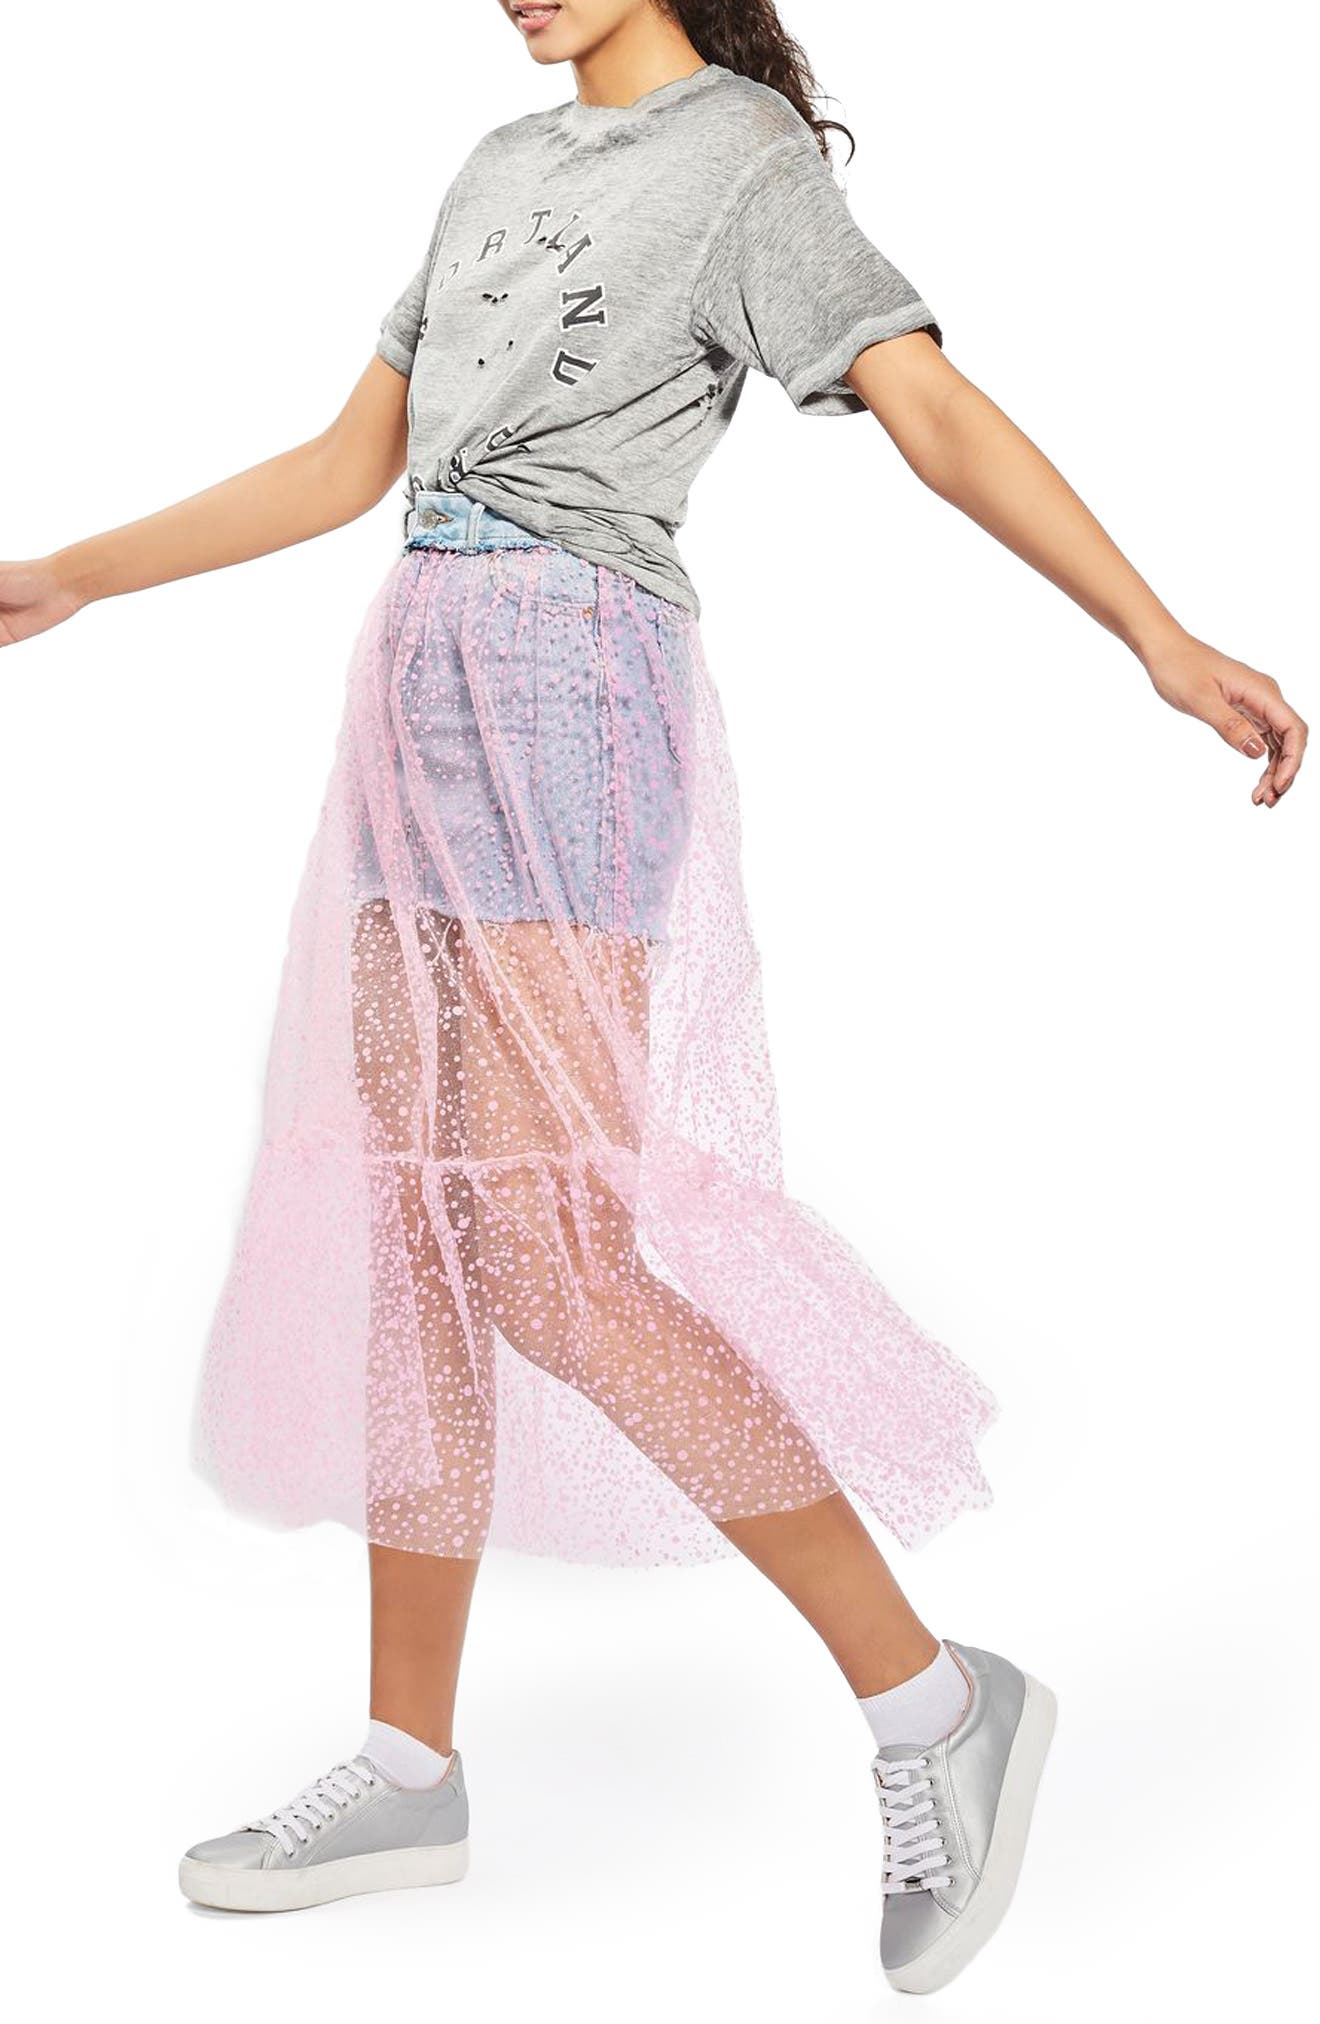 Alternate Image 1 Selected - Topshop Tulle Overlay Denim Skirt